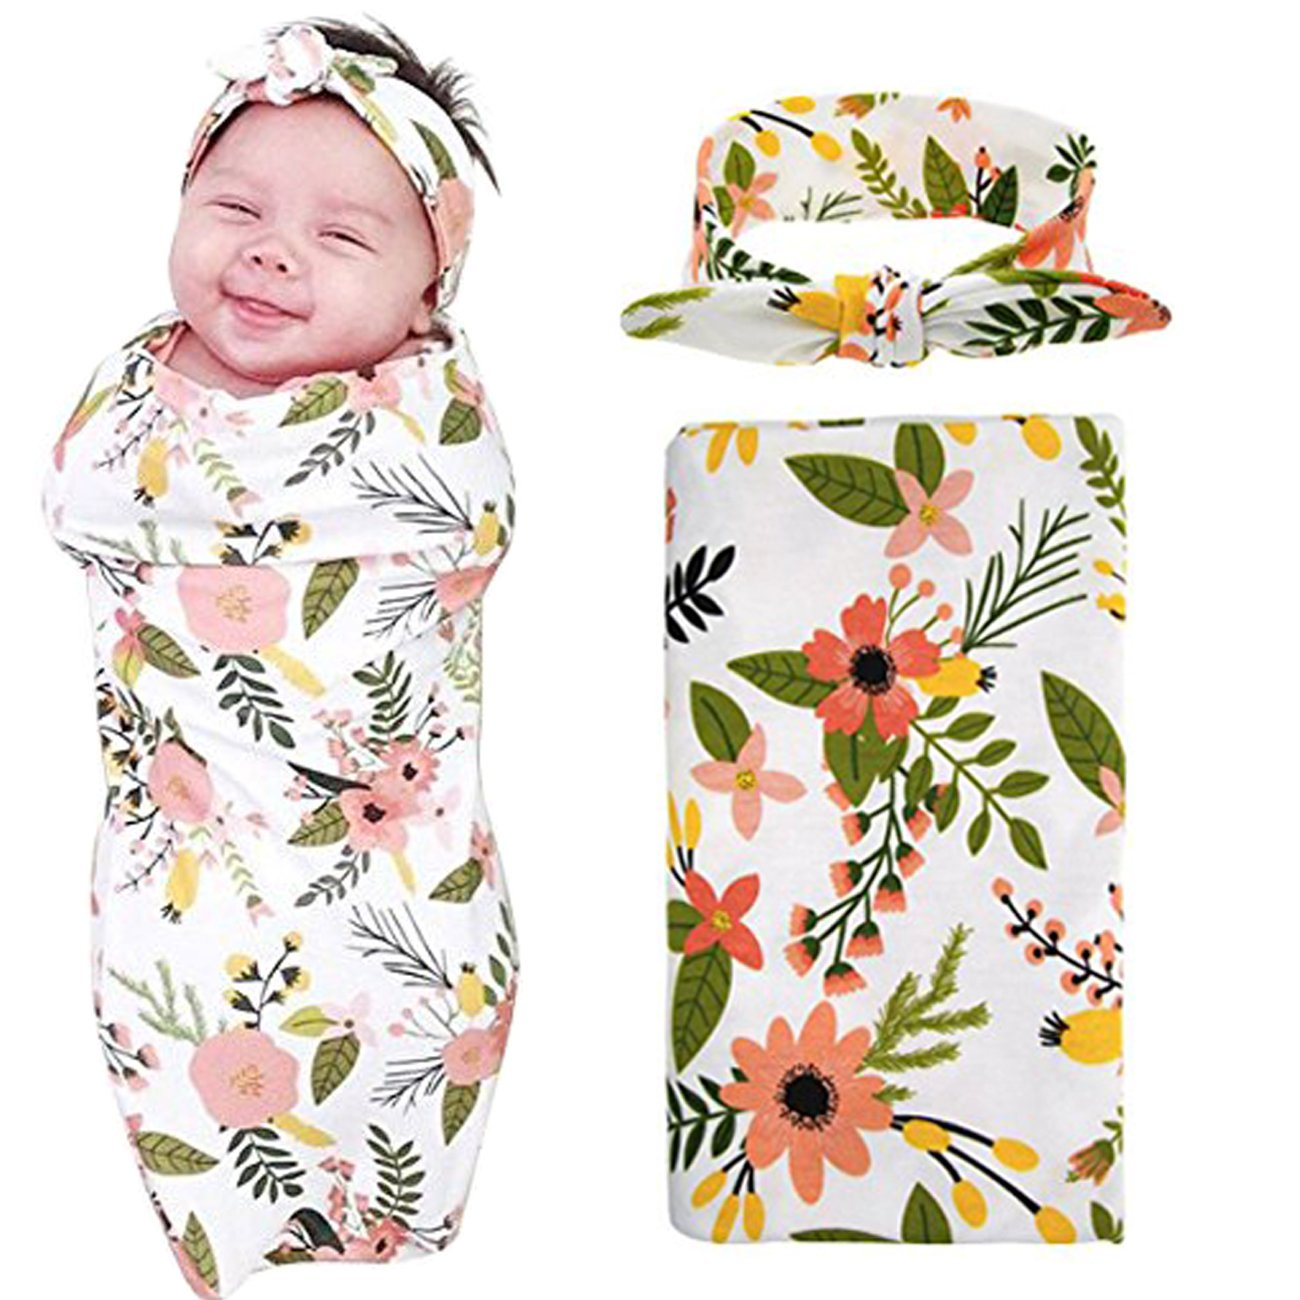 1 Pack Receiving Blanket with Headbands BQUBO Newborn Baby Floral PrintedBaby Shower Swaddle Gift